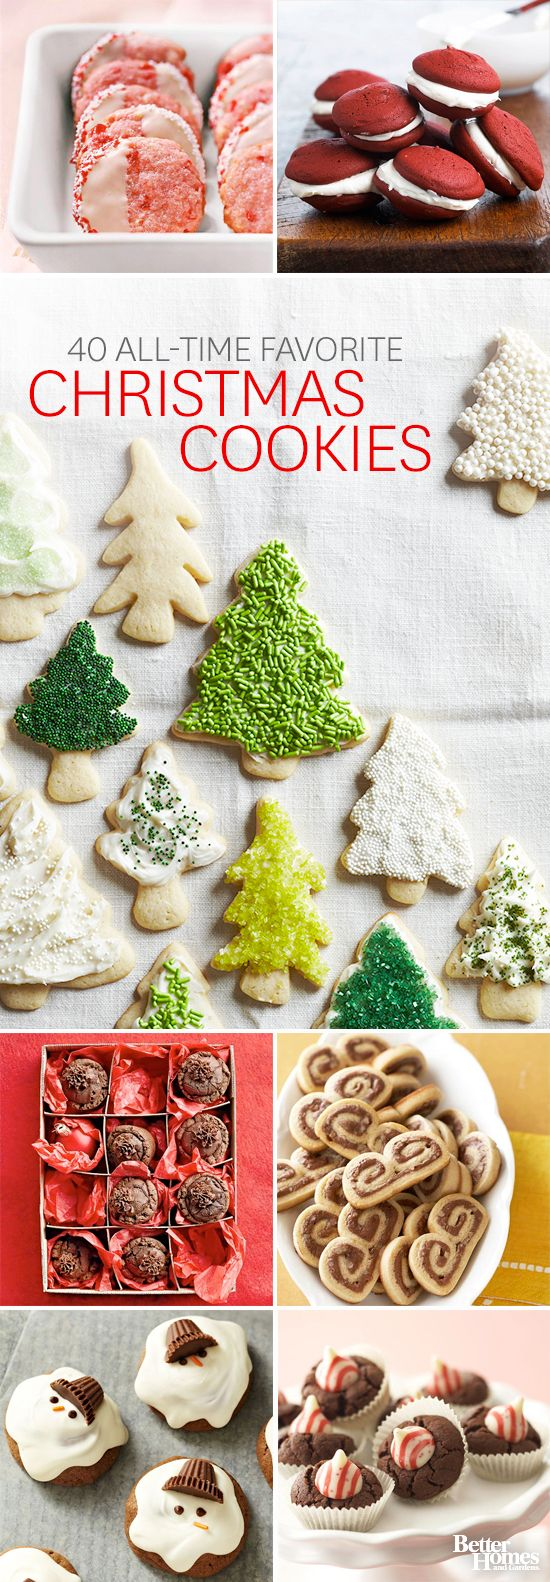 Click through for more of our favorite Christmas cookie ideas! Your guests will love them:  http://www.bhg.com/christmas/cookies/christmas-cookie-ideas/?socsrc=bhgpin101414christmascookiegiftbox